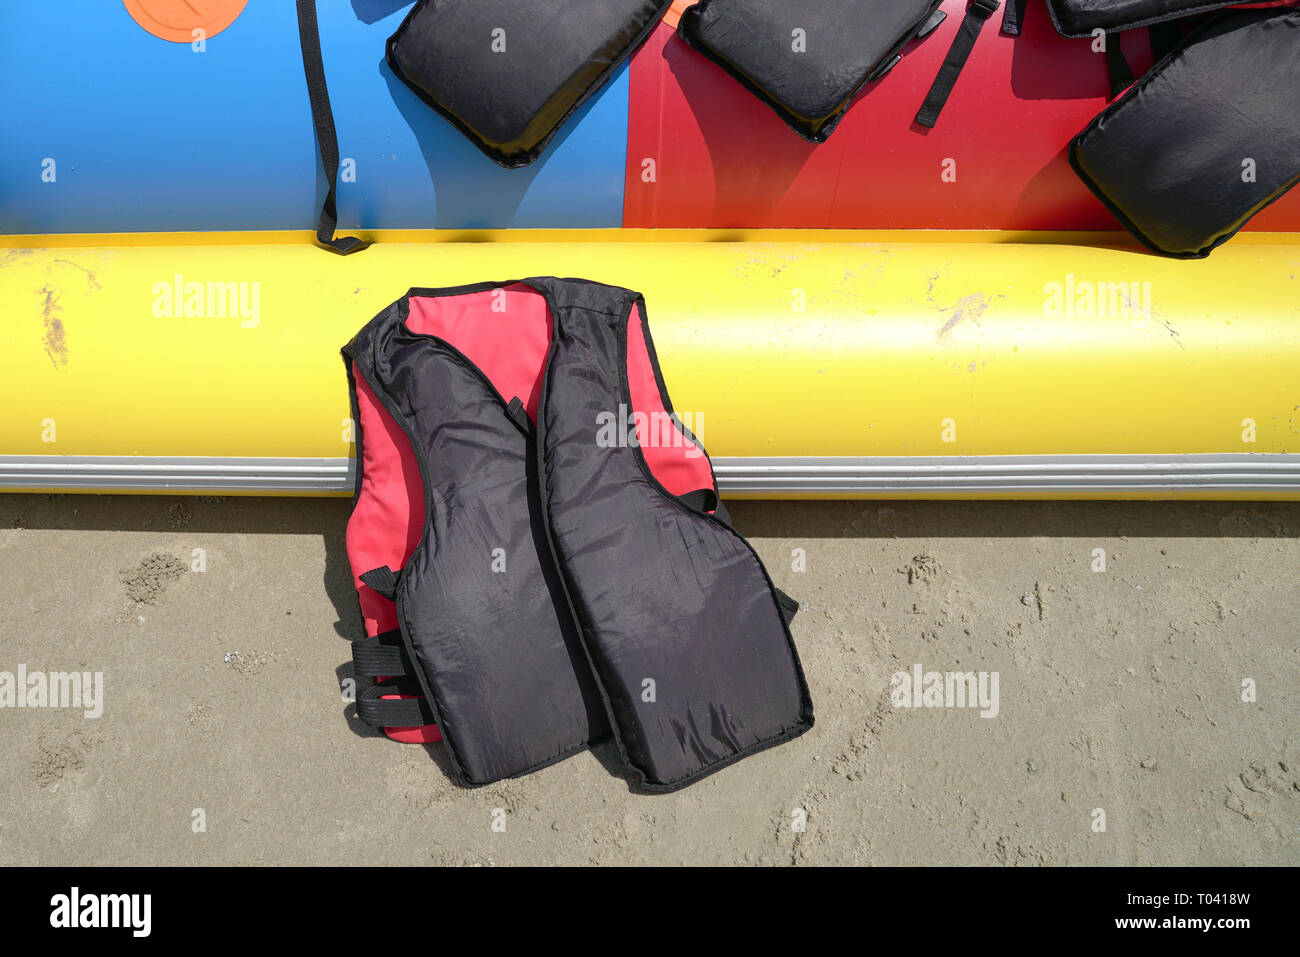 Life jacket by the side of a colorful banana boat with copy space - Stock Image